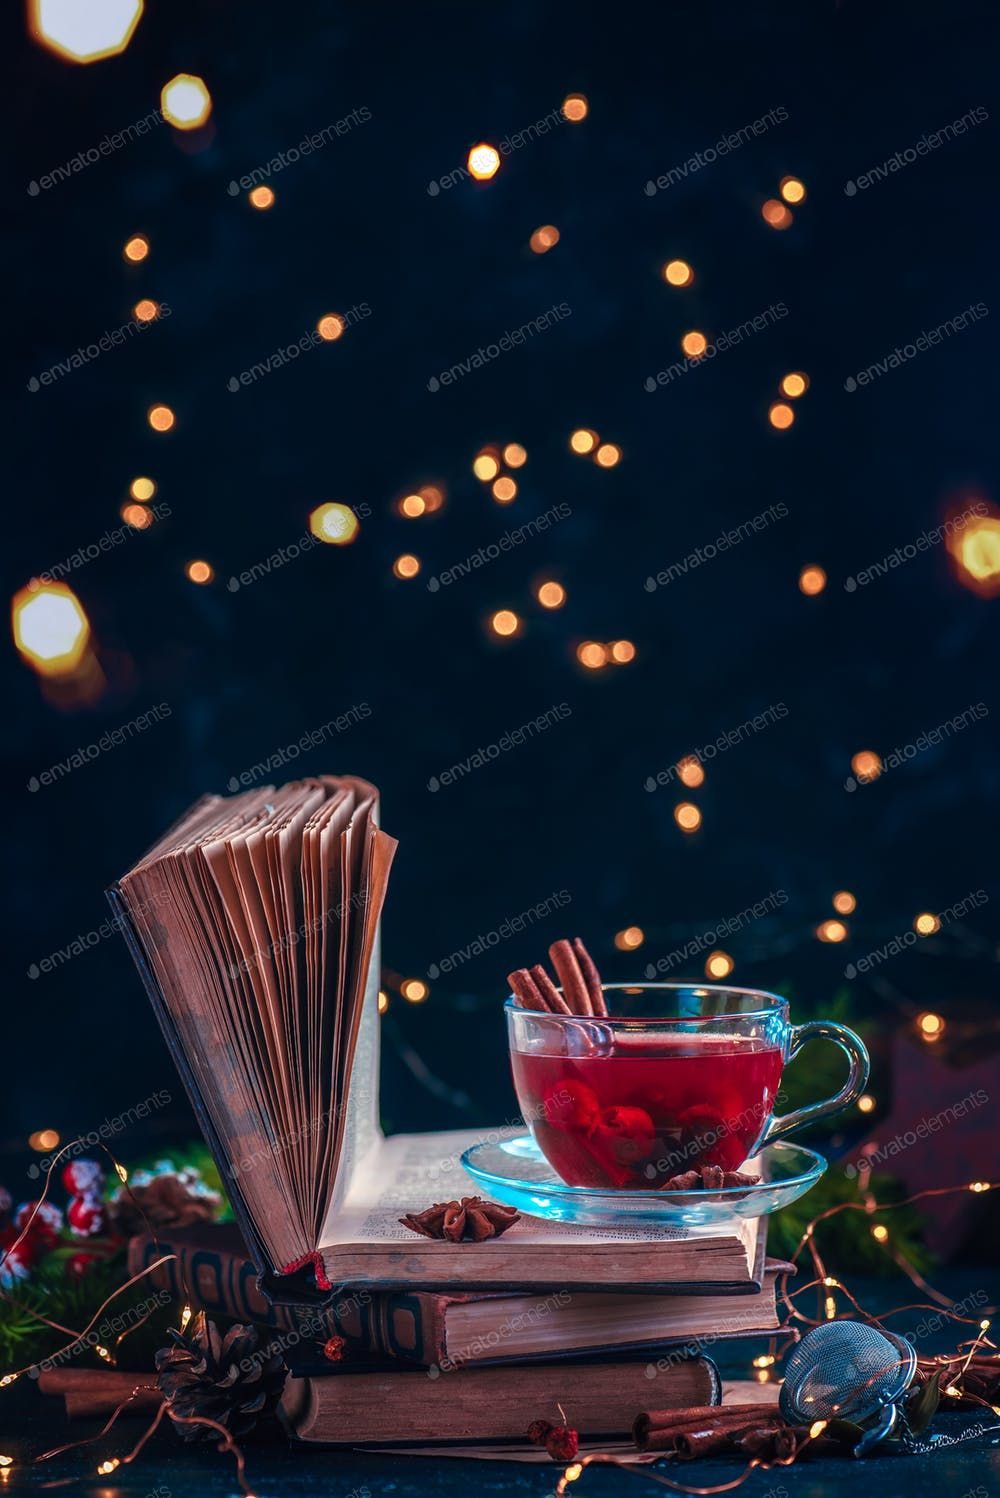 Red Berry Tea On A Stack Of Books With Fairy Lights Christmas Drink On A Dark Backgro Christmas Lights Christmas Light Photography Christmas Lights Background